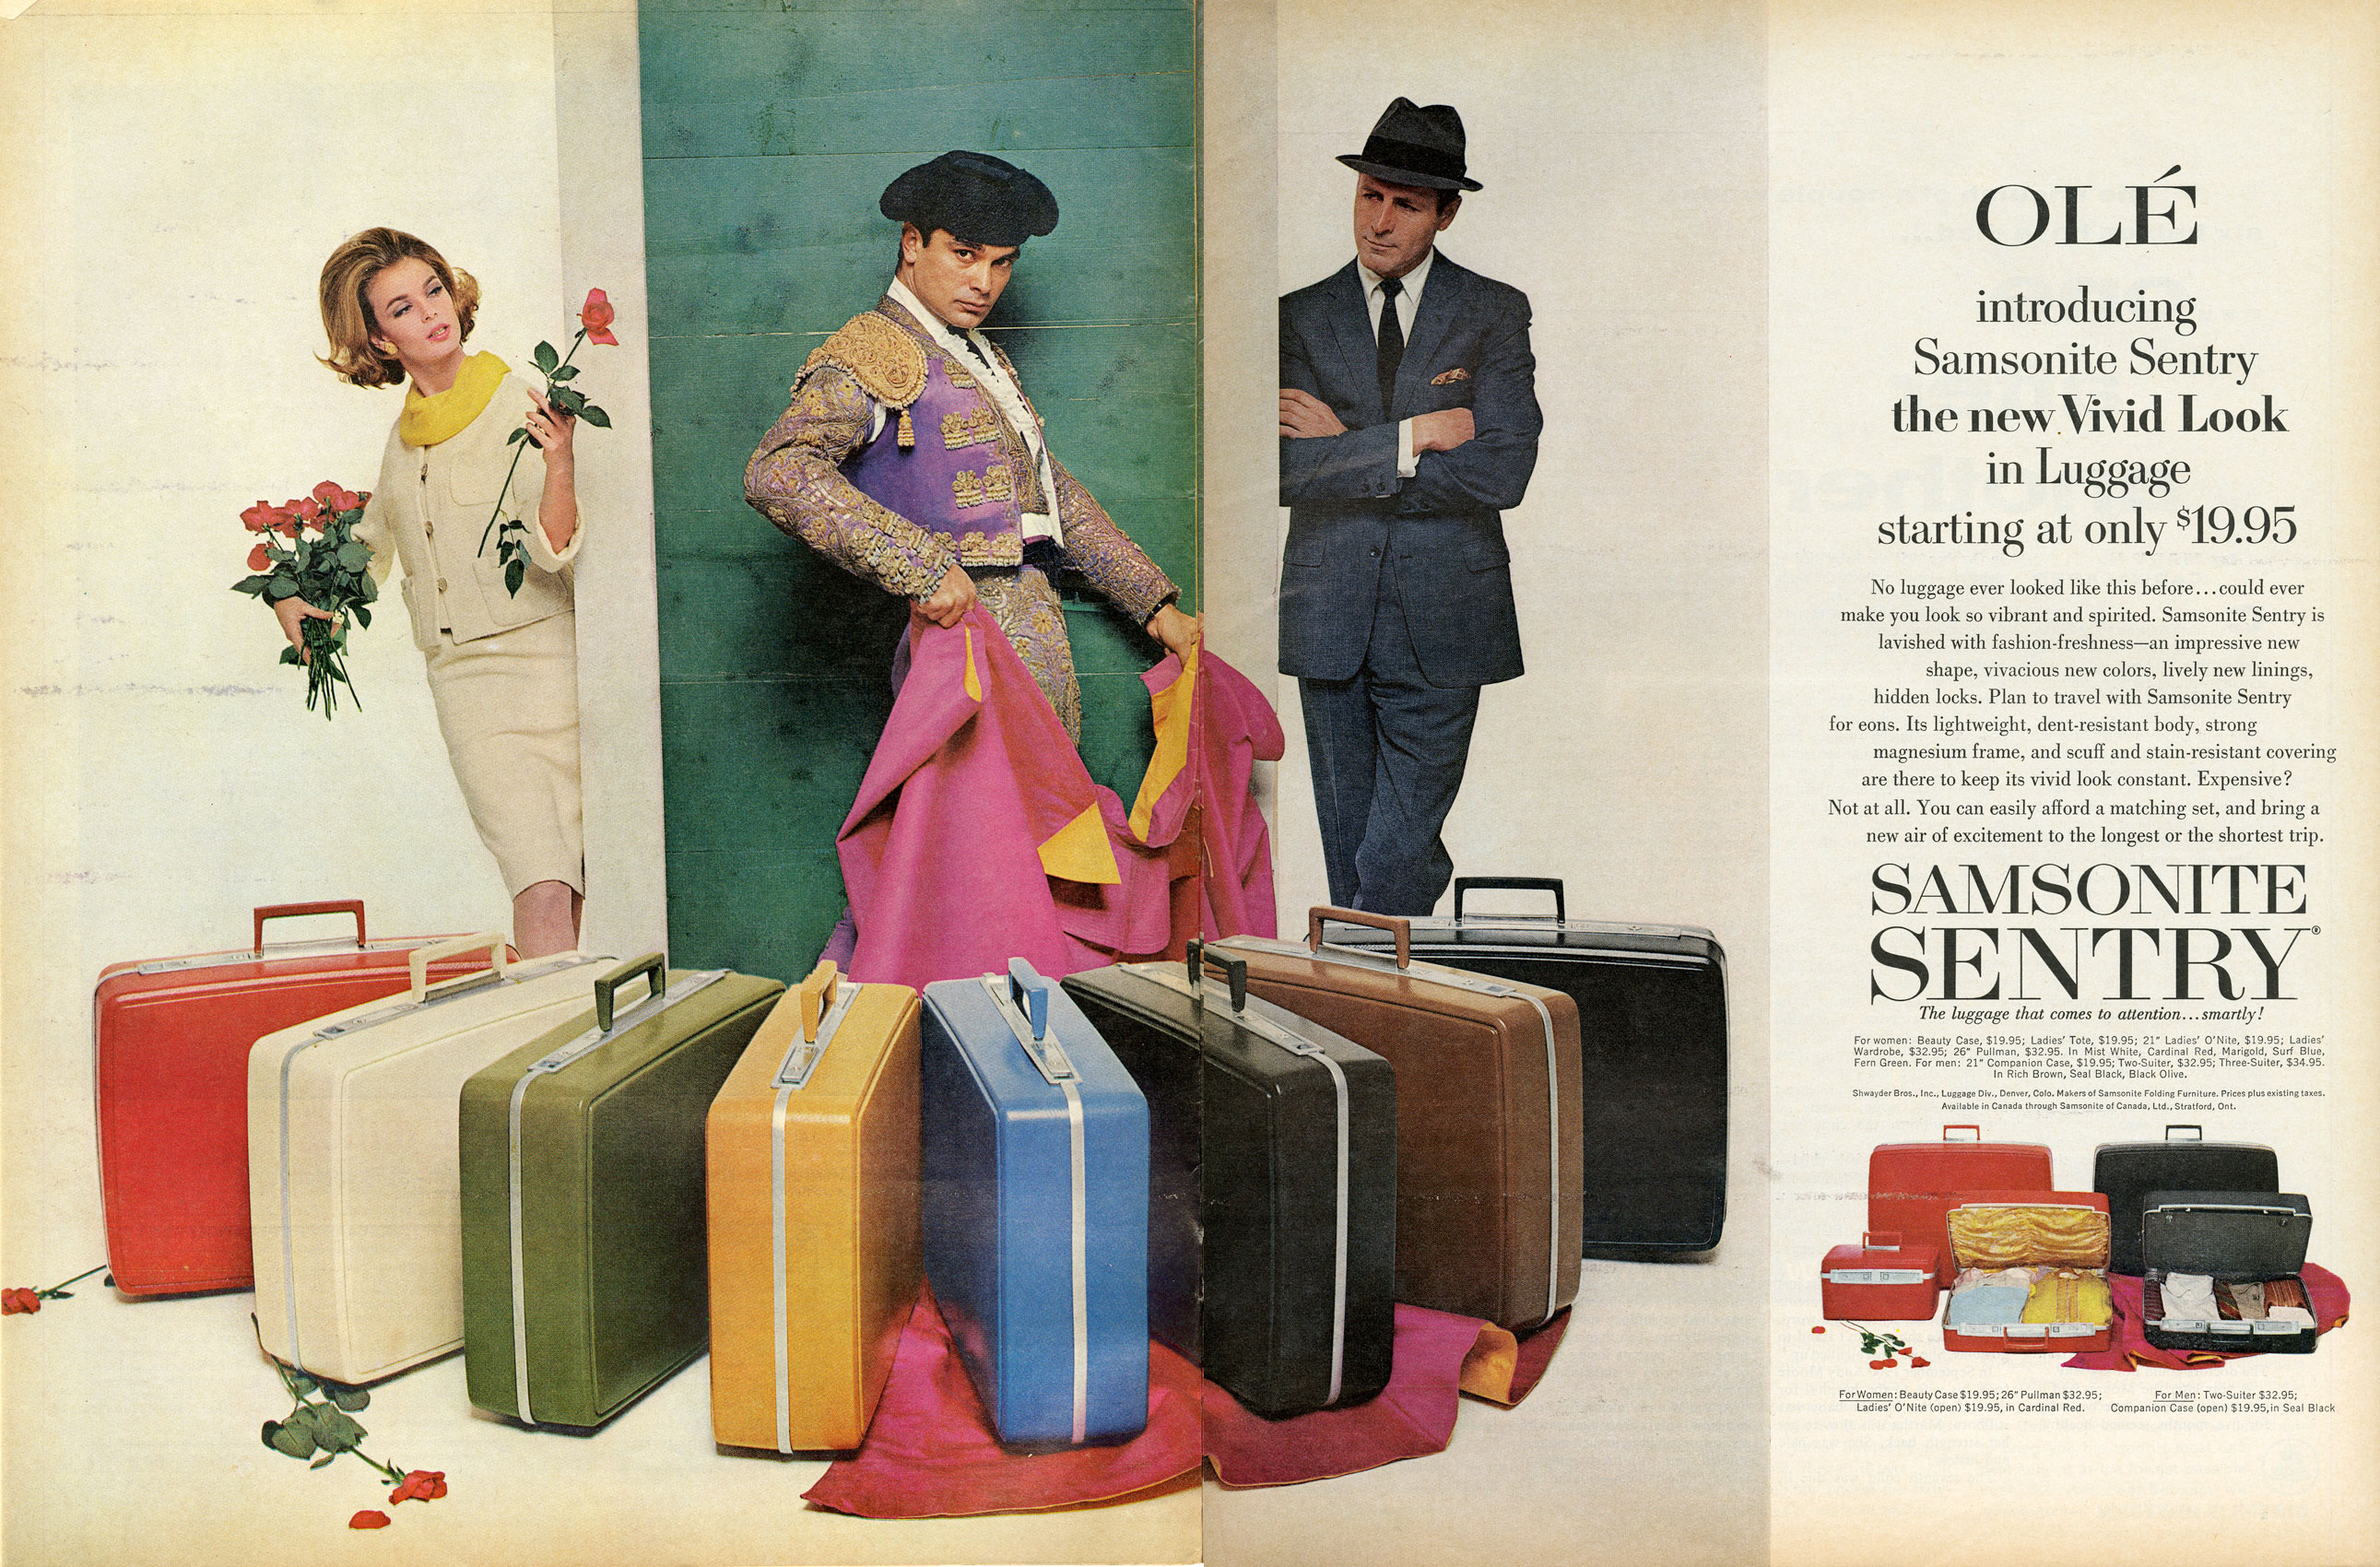 "<b>Samsonite, July 12, 1963</b> <i>Mad Men</i>'s pitch for Samsonite coincides with the legendary Muhammed Ali vs. Sonny Liston fight for World Heavyweight Champion. Don's last-ditch idea is to play off the photo of a victorious Ali that appeared in newspapers across the country following the fight, comparing the suitcase to the boxing champion. This real Samsonite ad mentions the luggage's durability in the copy (""dent-resistant body, strong magnesium frame""), but visually prioritizes its value as a handsome fashion accessory to take on exotic trips."